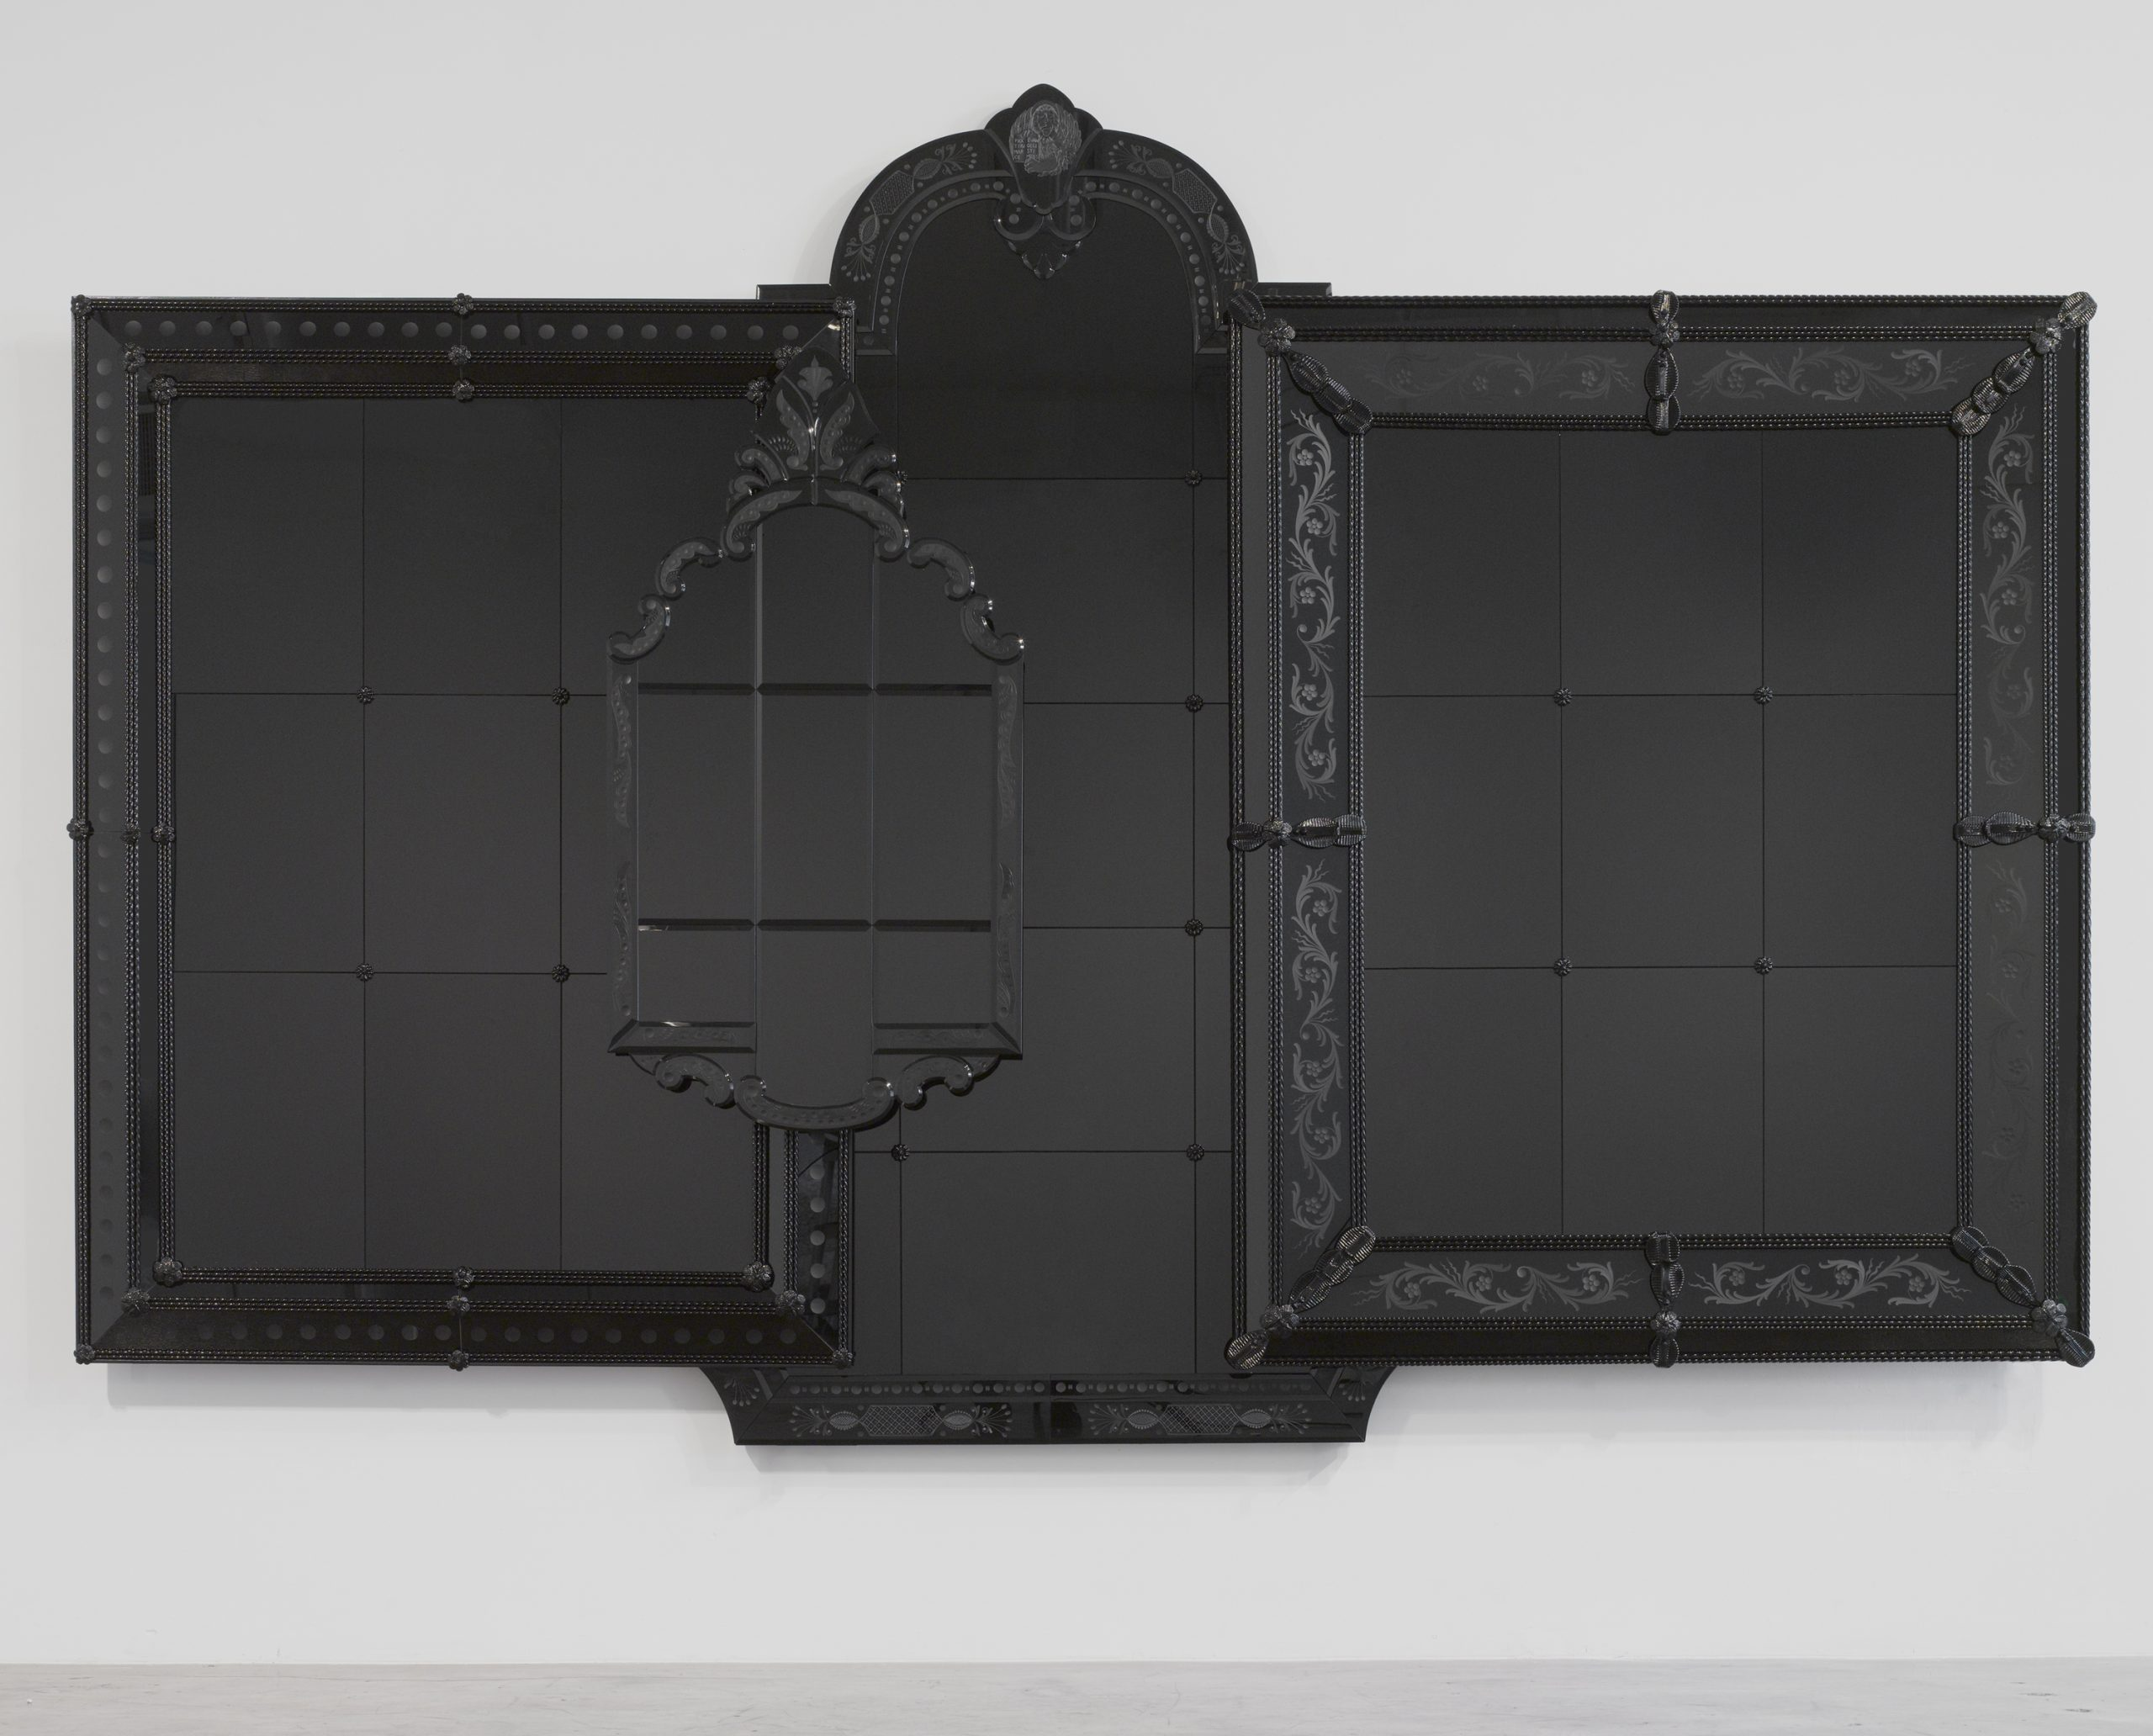 A black and reflective artwork made from the composite of four ornate frames.